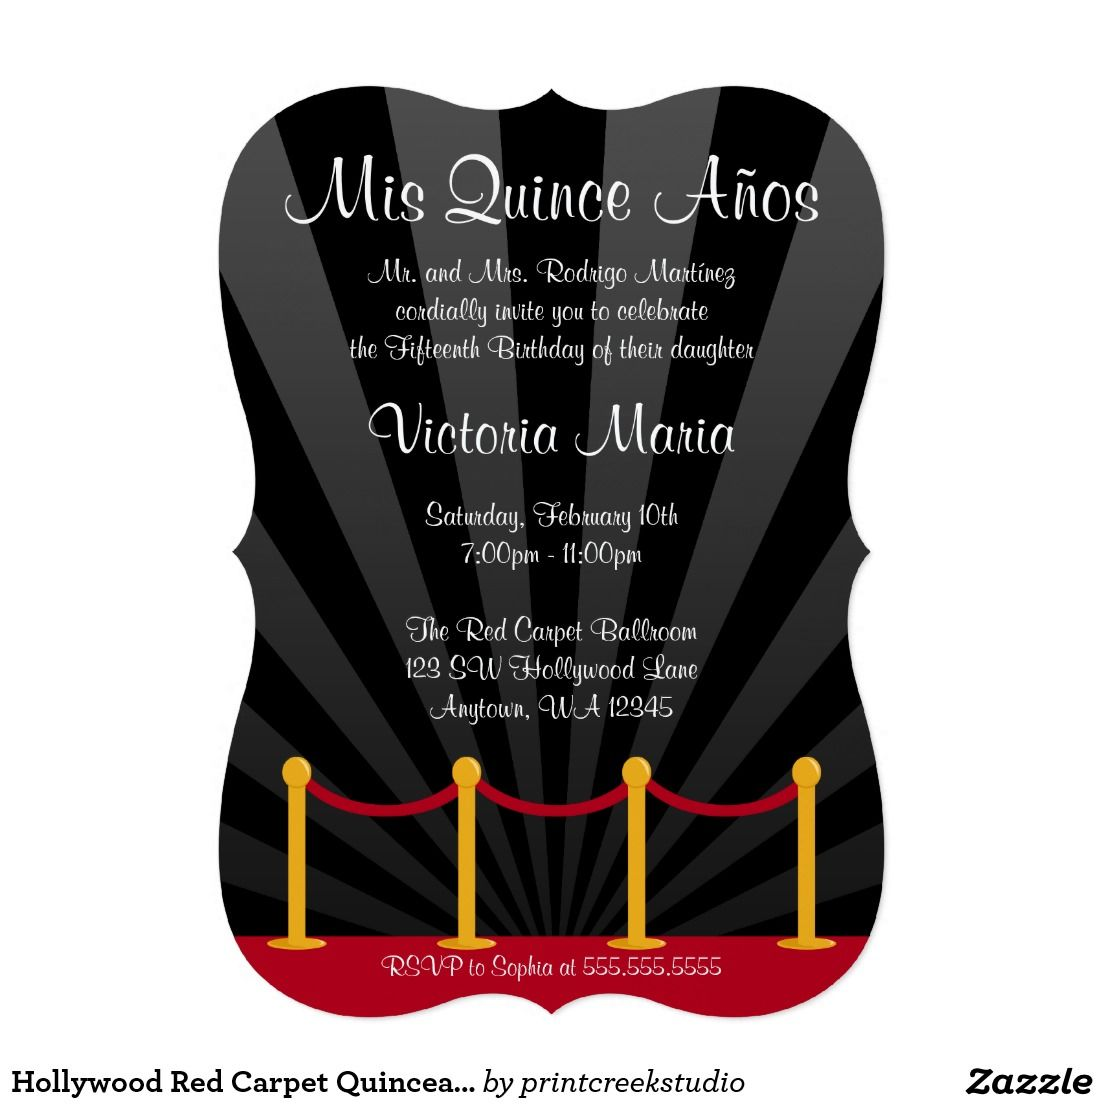 Hollywood Red Carpet Quinceanera Party Card | 18 Gabry | Pinterest ...